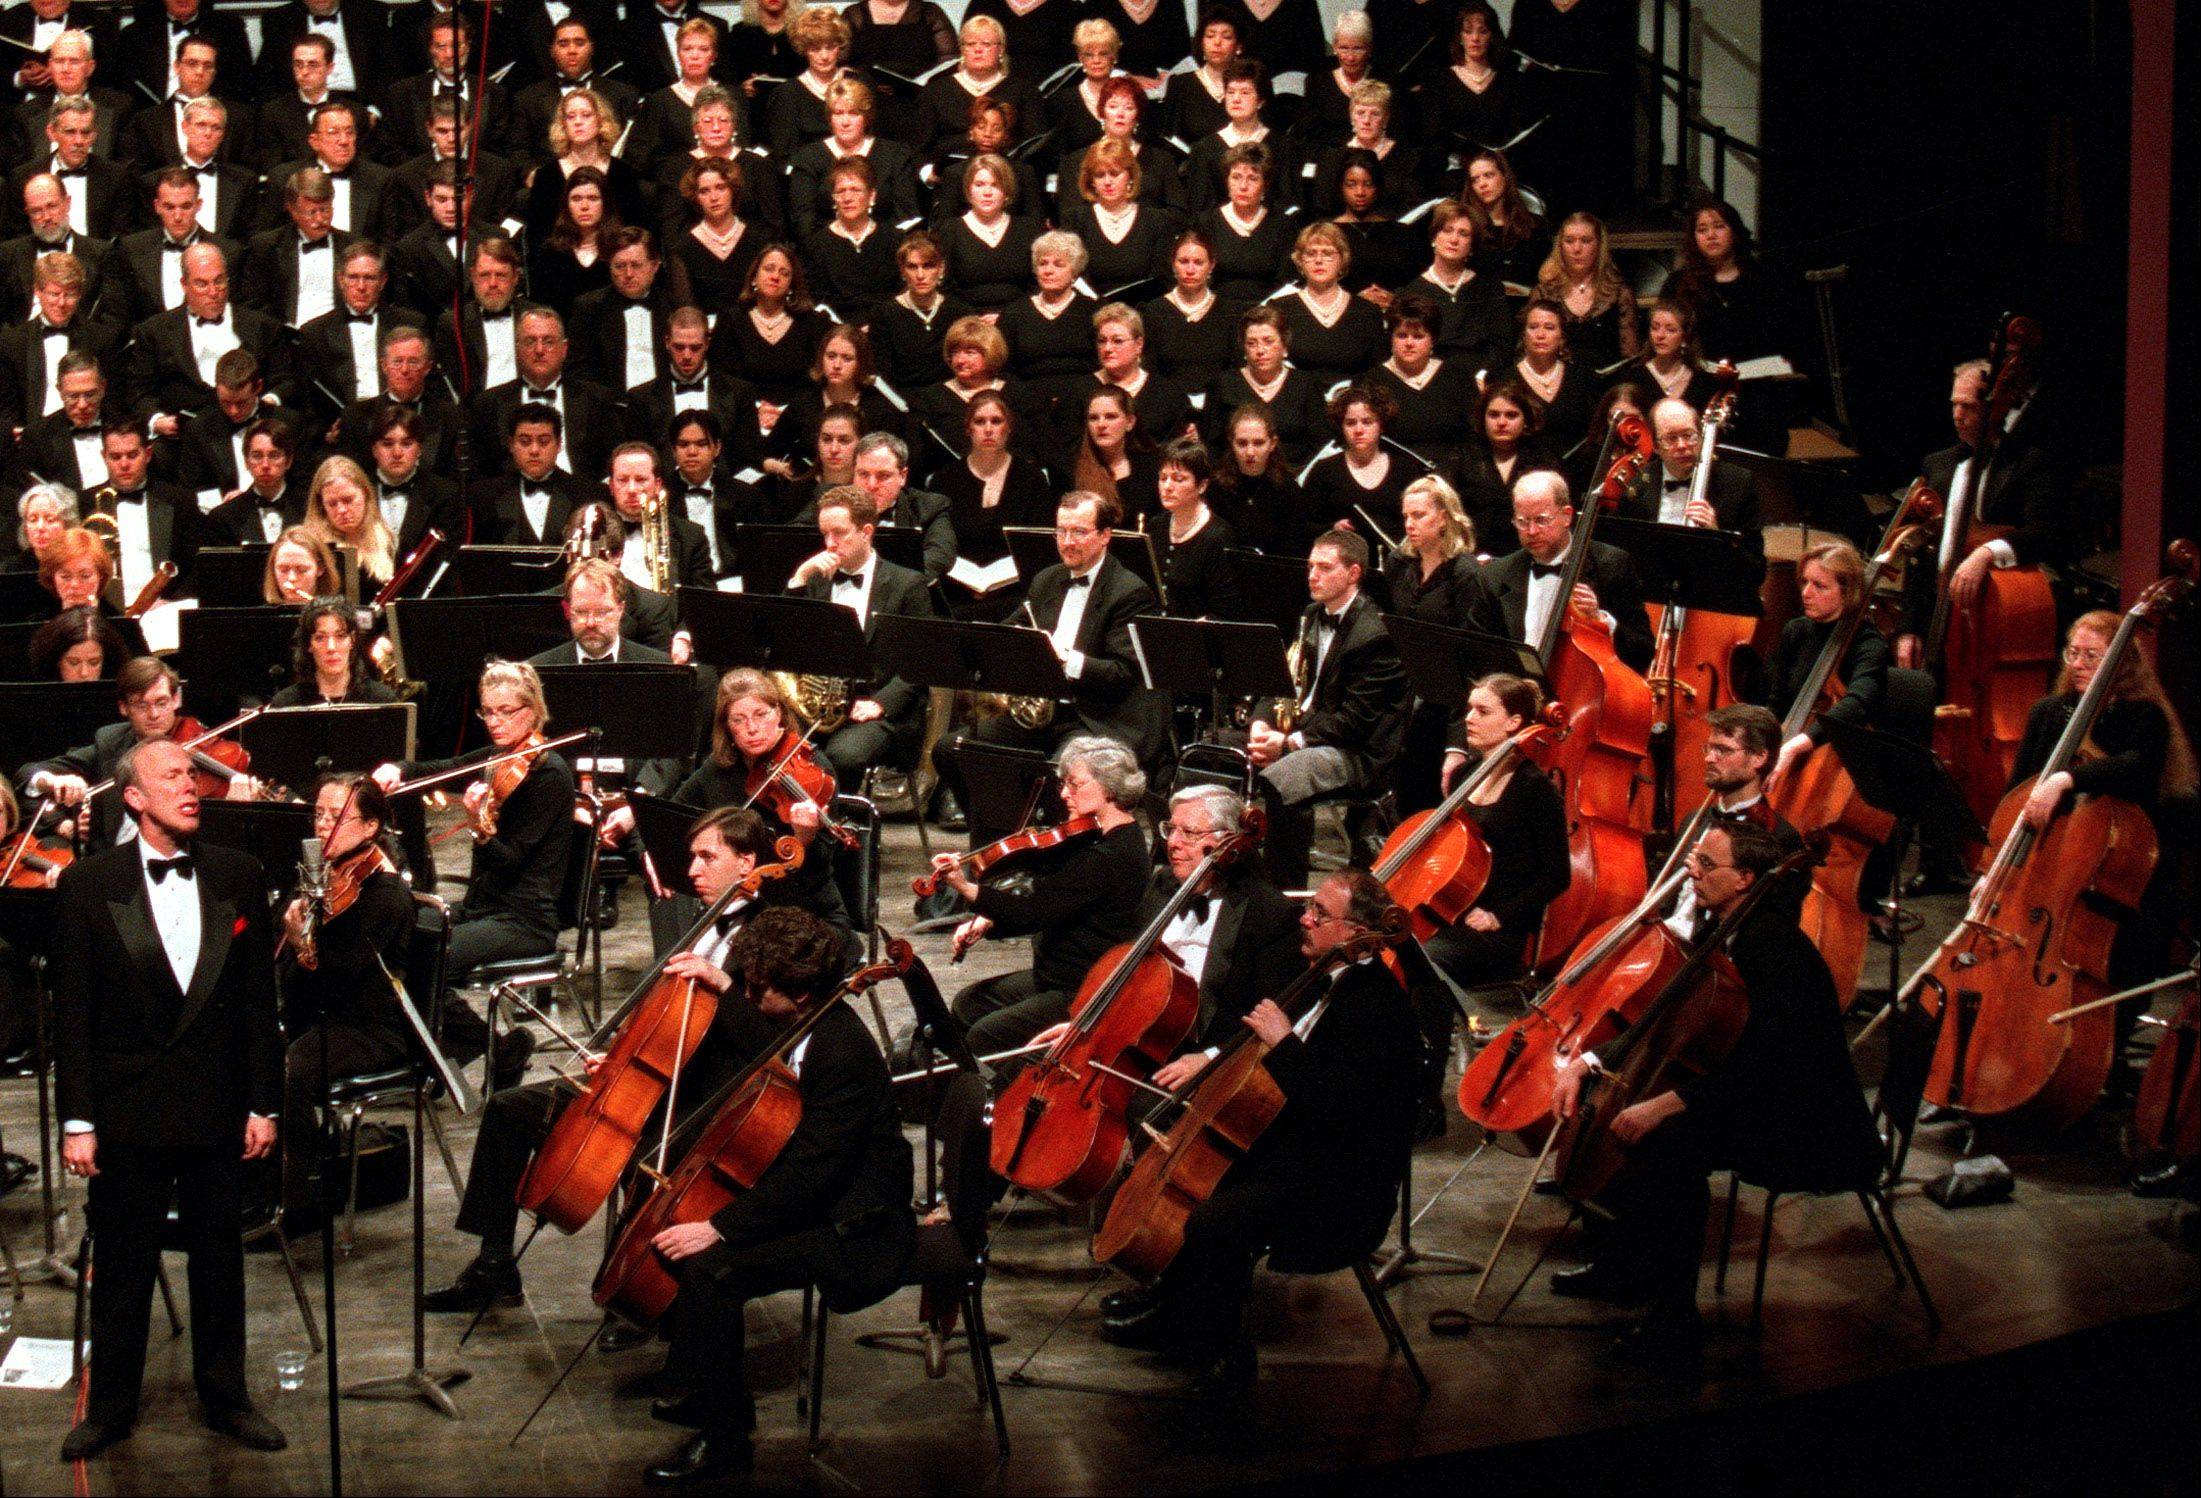 Soloist Robert Orth, far left, performs with the Elgin Symphony Orchestra and Elgin Choral Union.